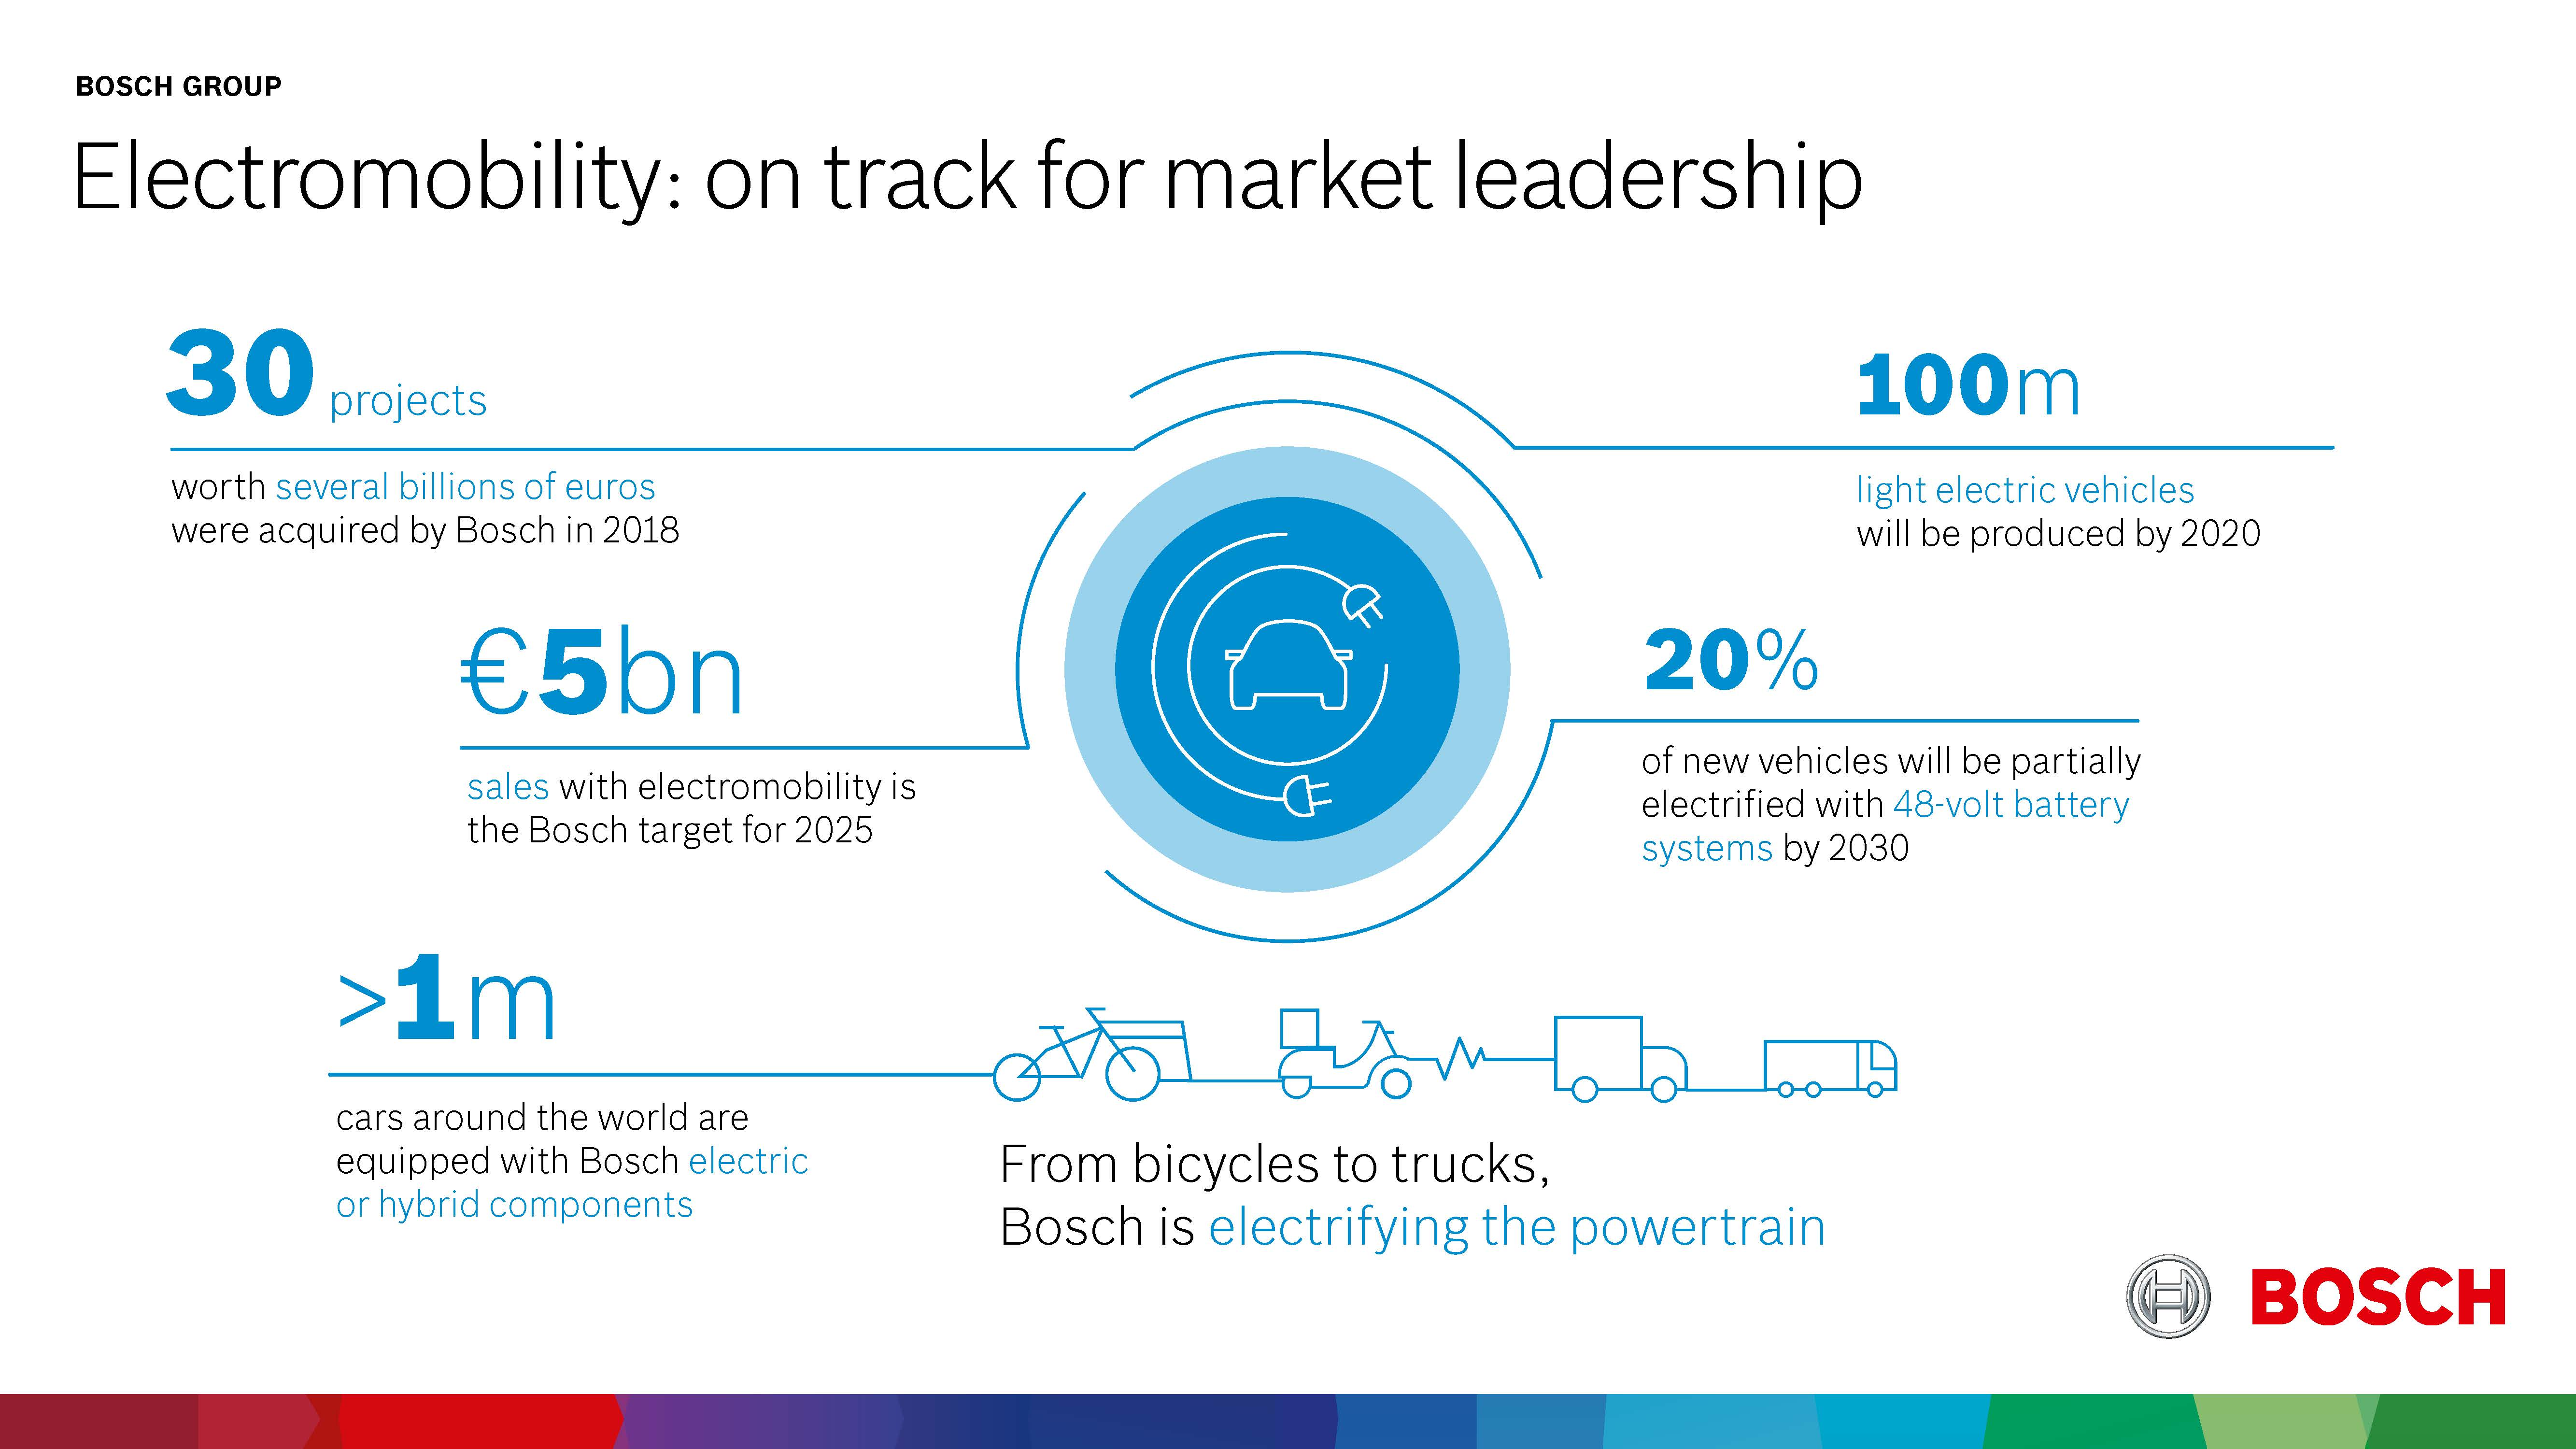 Electromobility: on course to become market leader